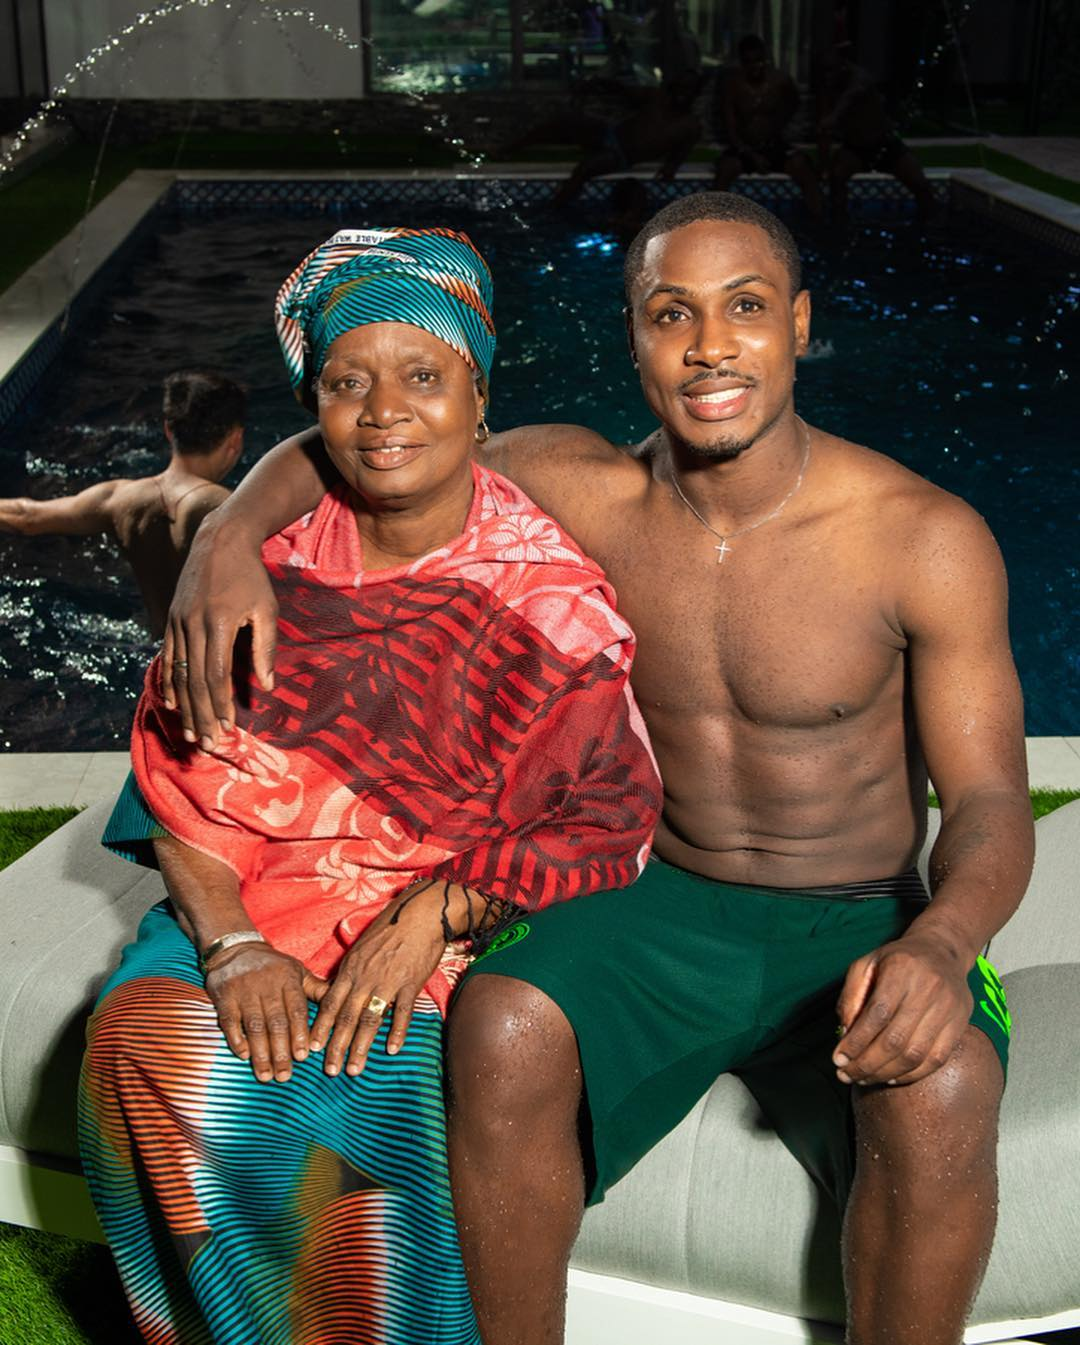 Ighalo happy to have his mother watch him play for the first time